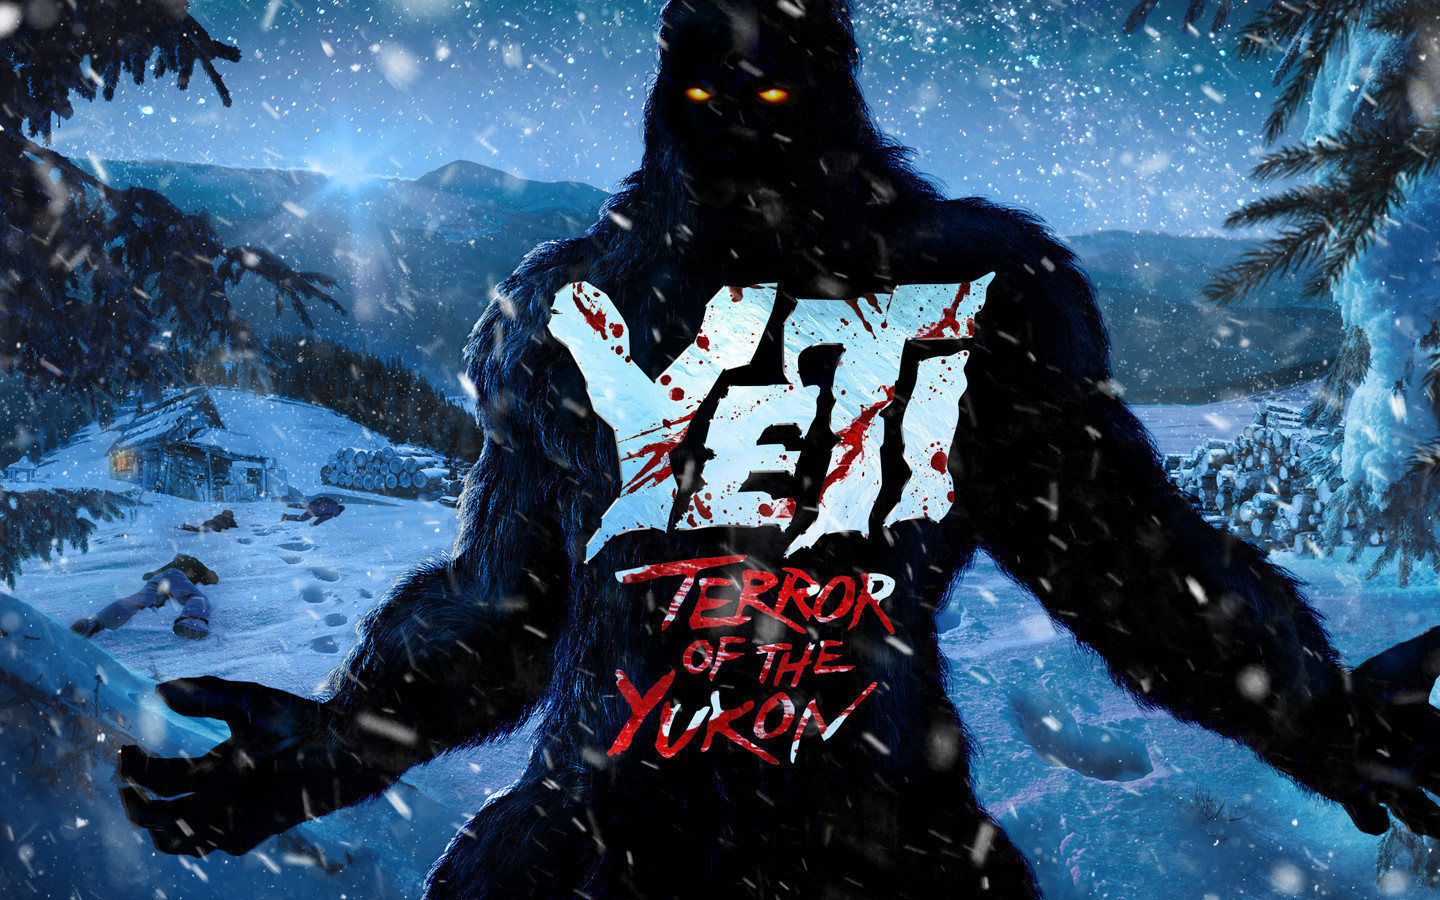 Haunted Houses at Halloween Horror Nights 2019 | HHN Houses | Yeti: Terror of the Yukon